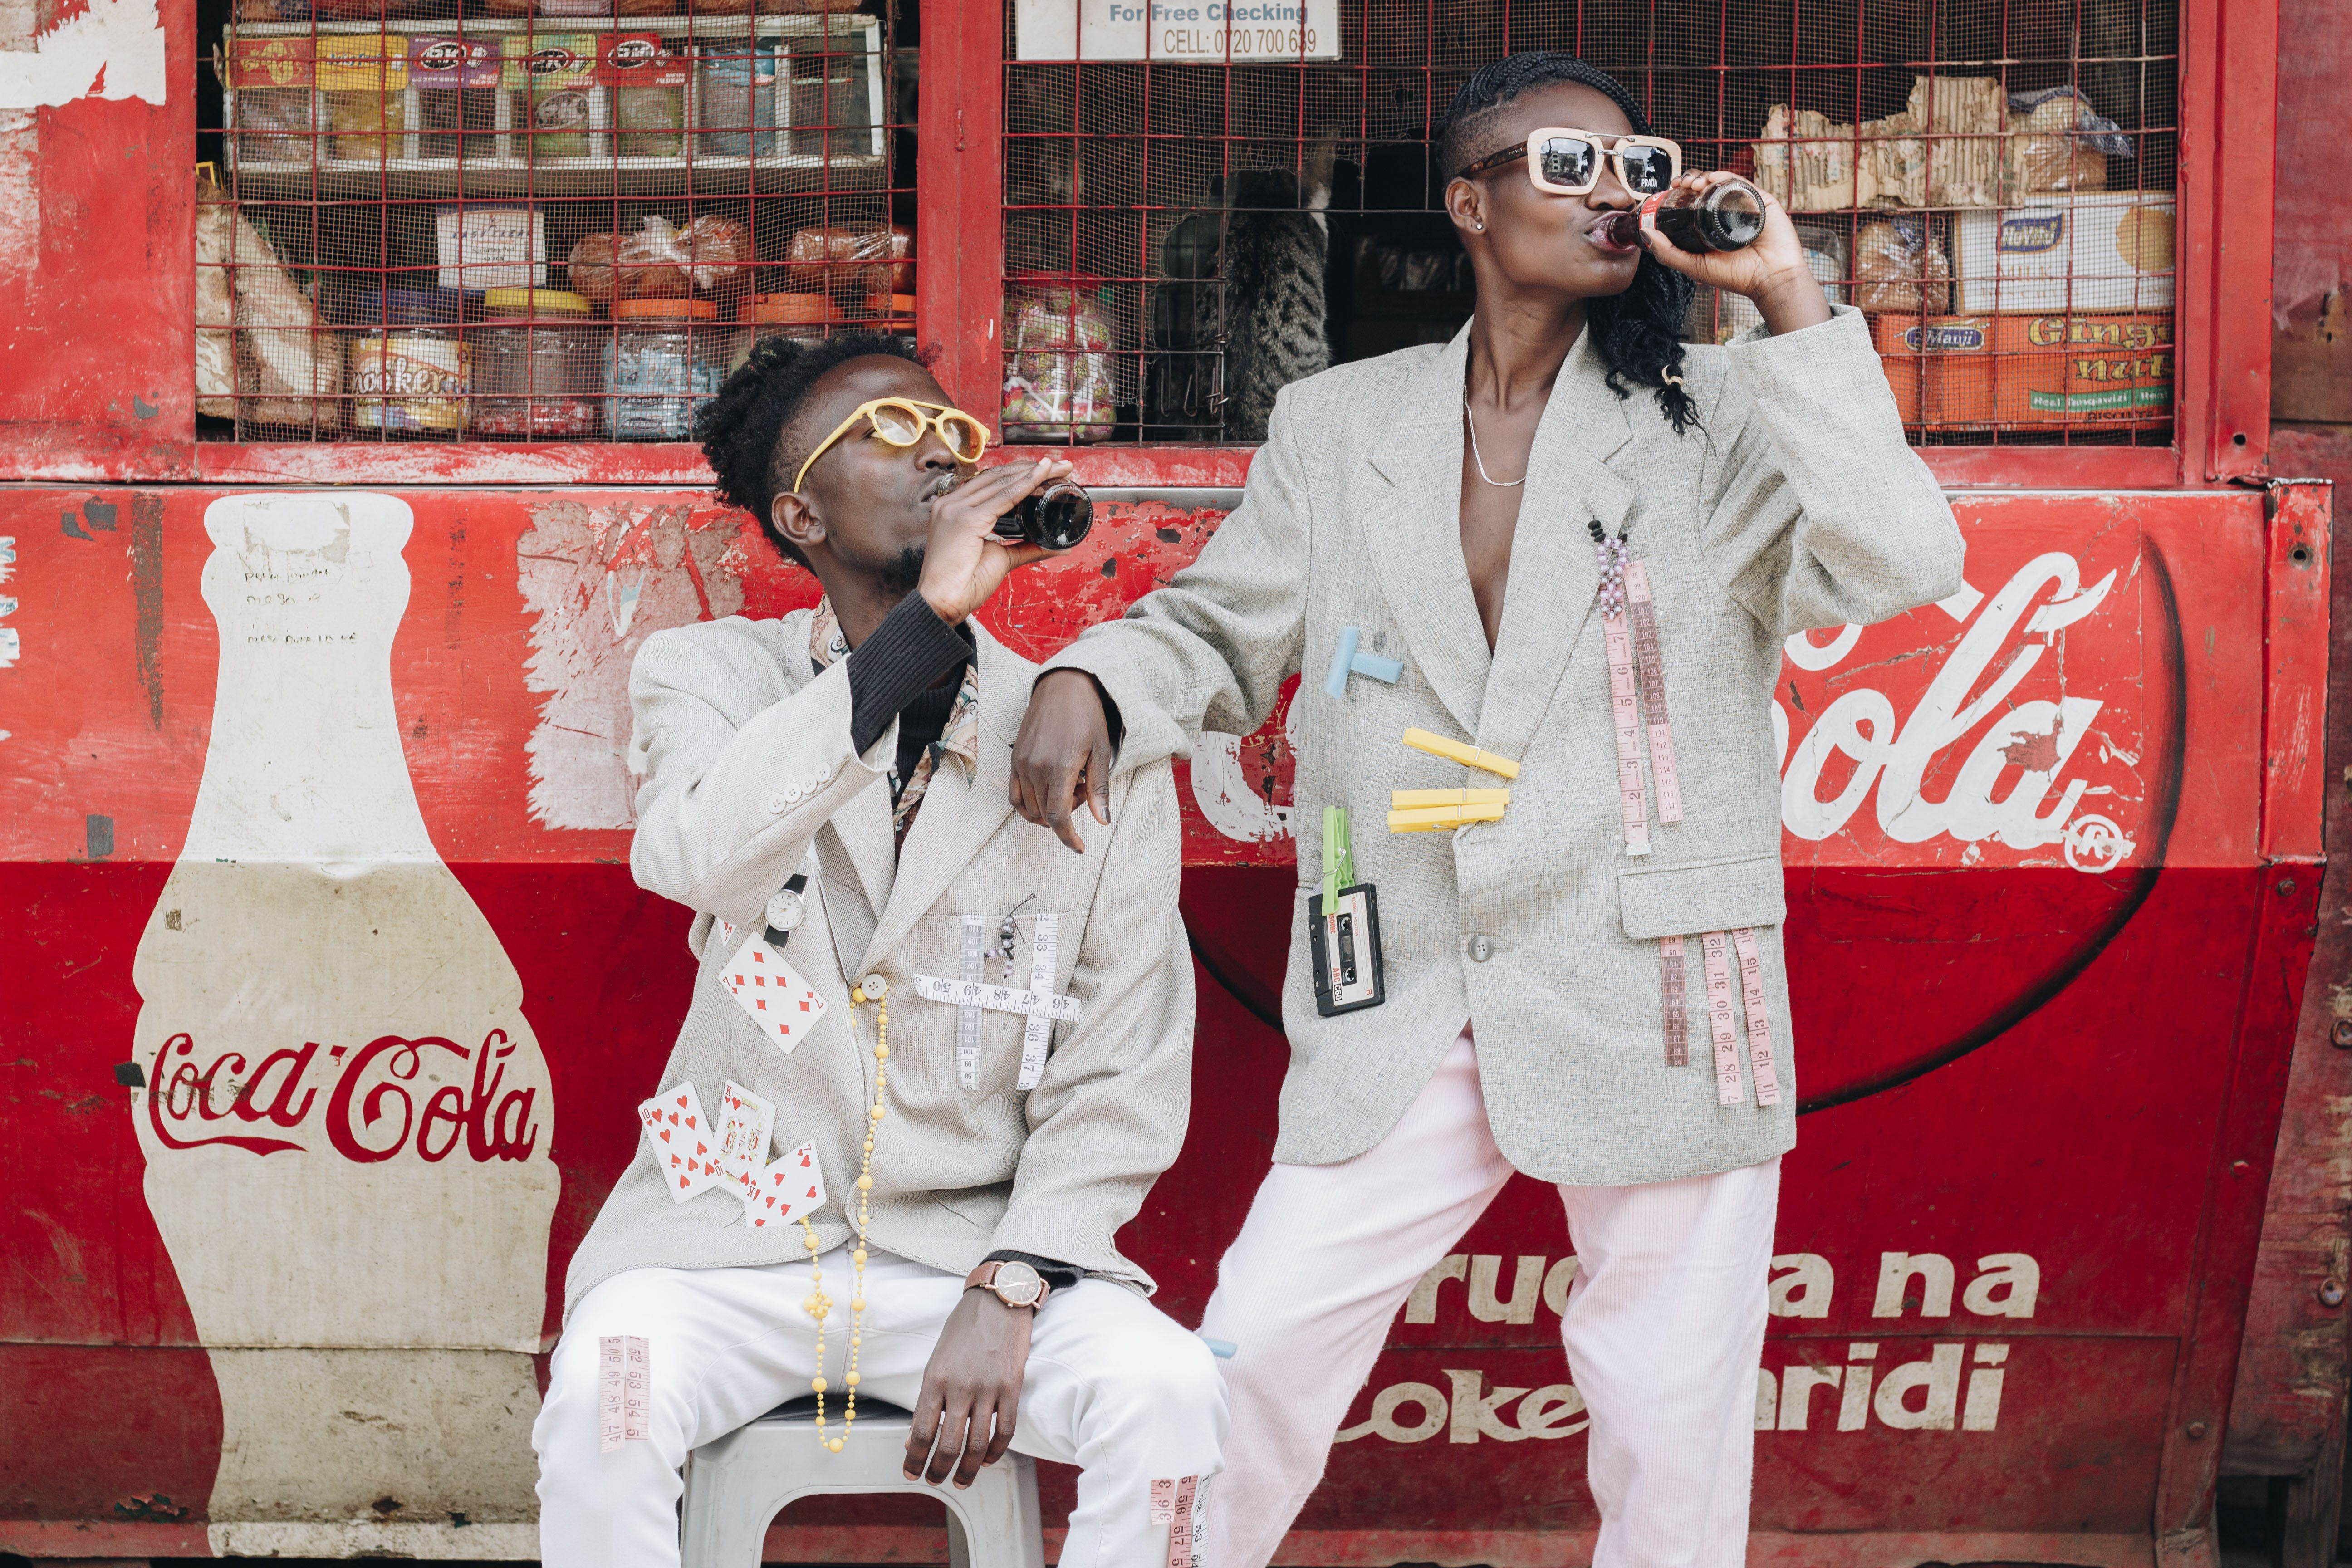 Two Person Drinking Coca-cola Next to a Kiosk